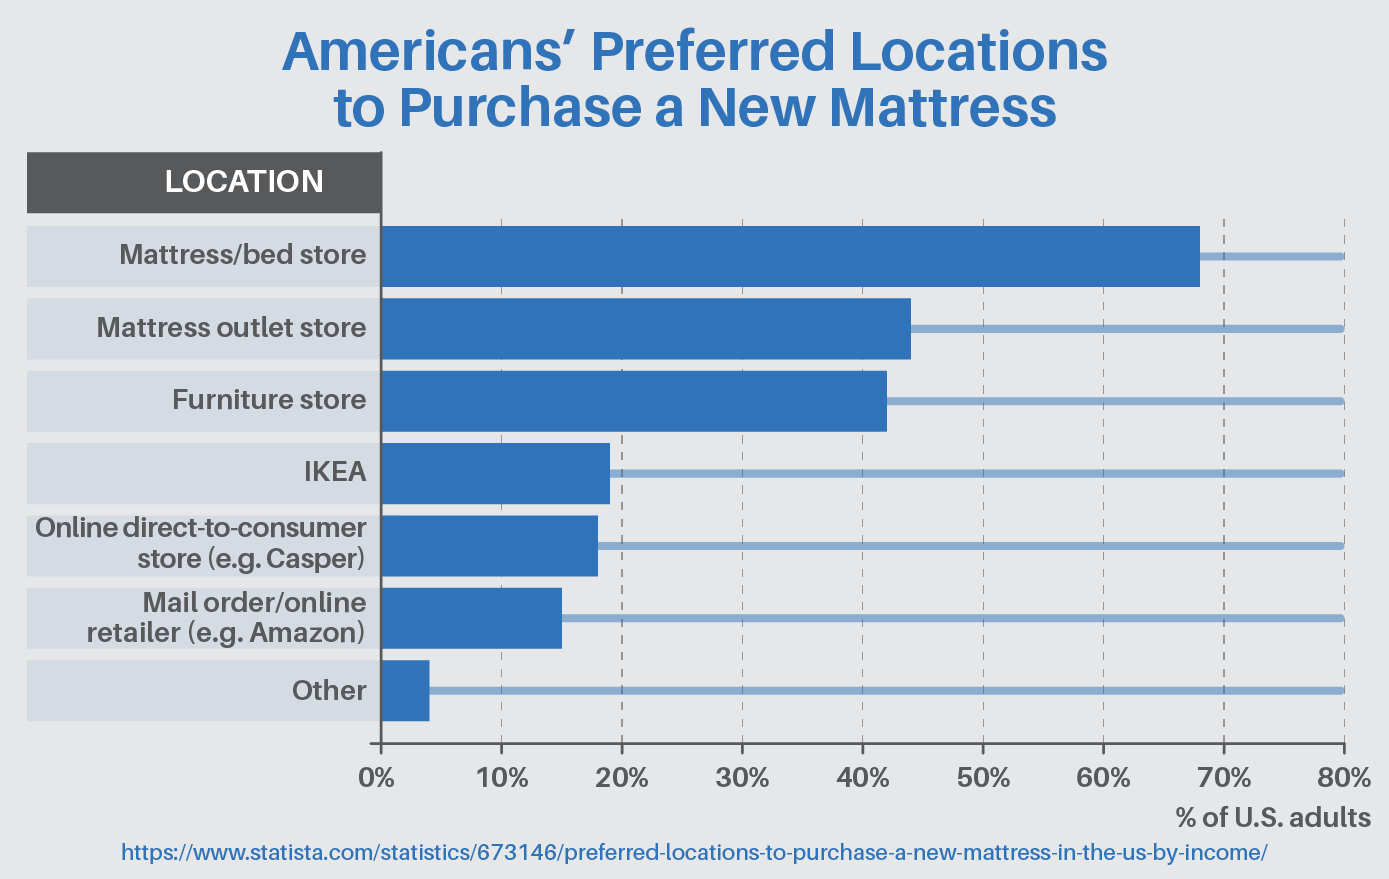 American's preferred locations to purchase a new mattress